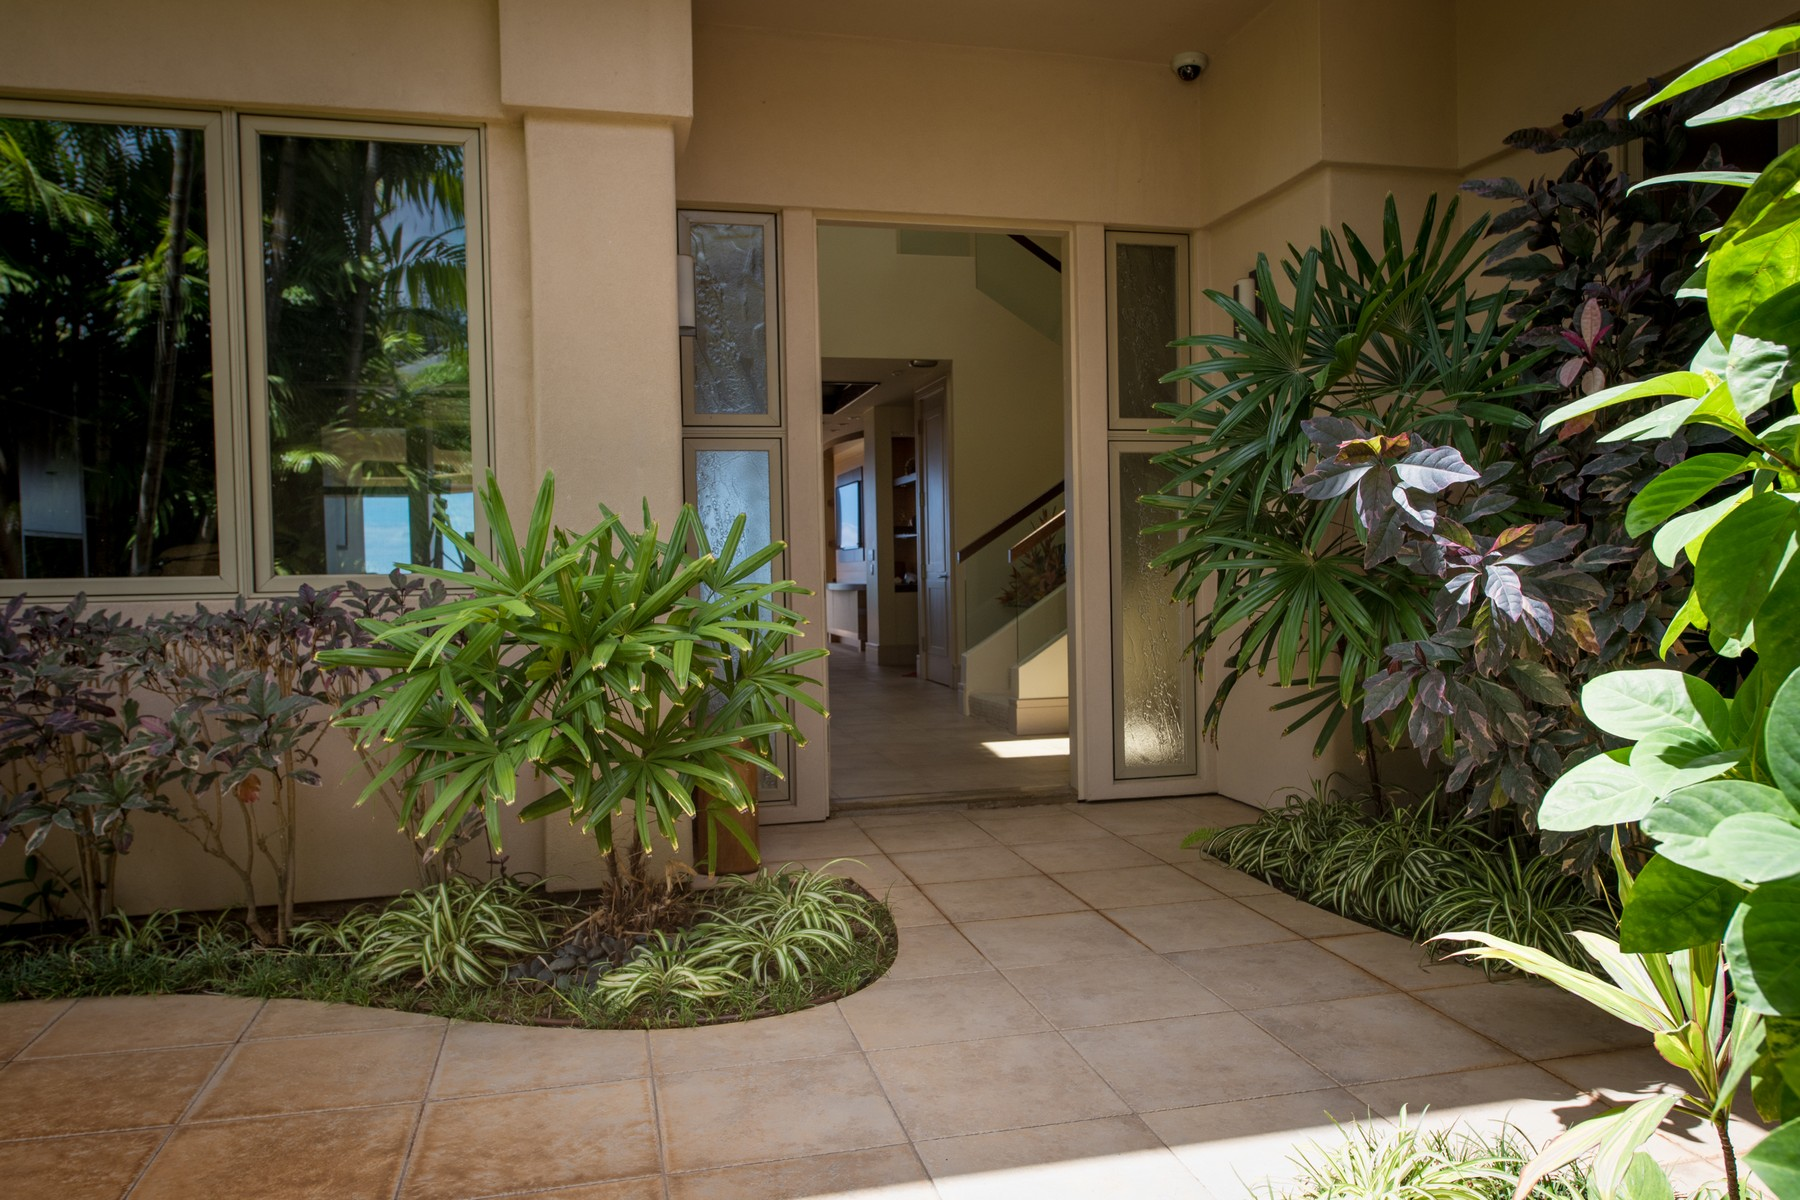 Single Family Home for Active at Stunning Estate In Pineapple Hill Kapalua 302 Cook Pine Drive Kapalua, Hawaii 96761 United States